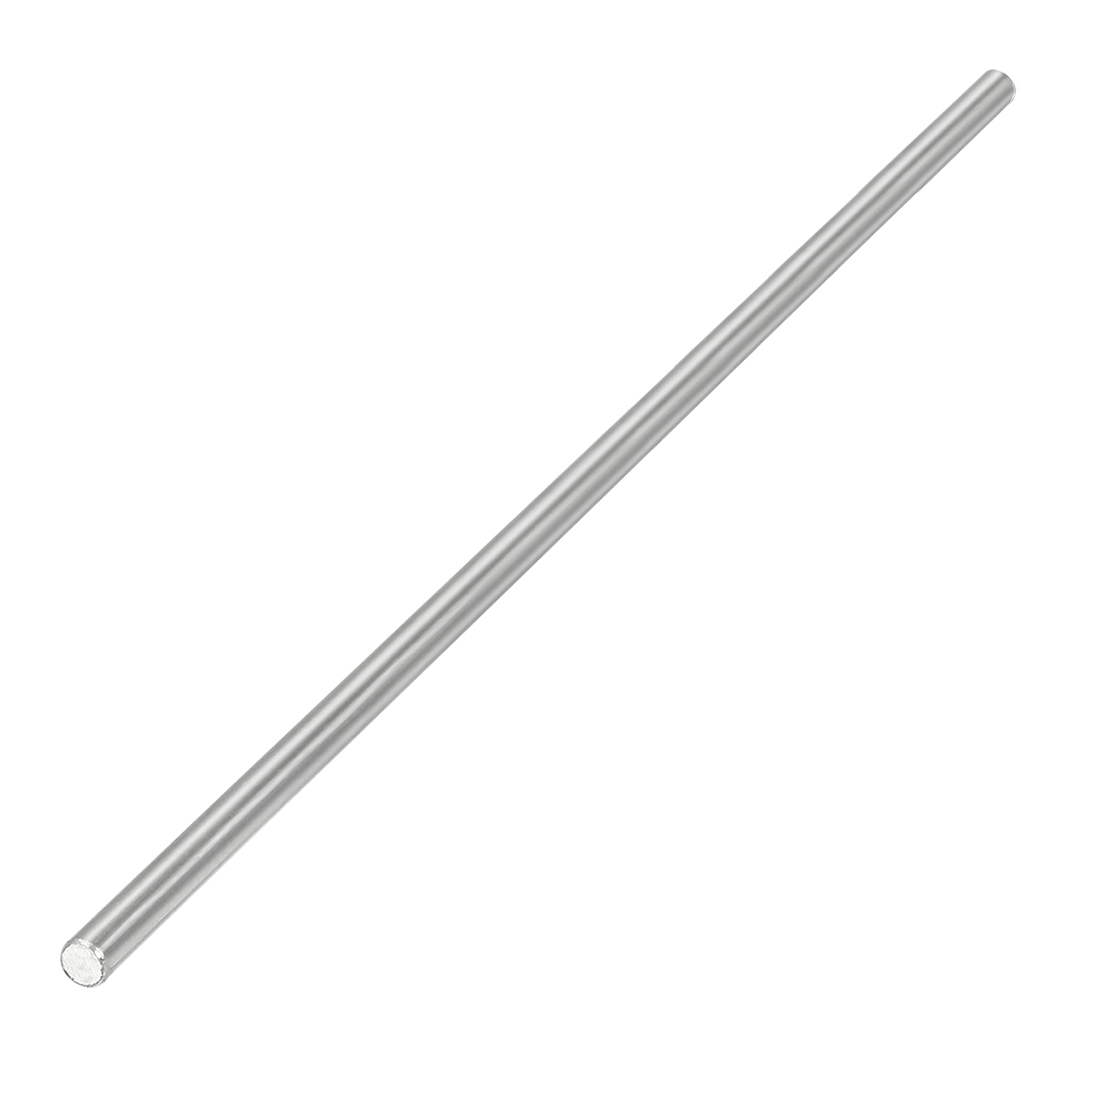 2.5mm Dia 140mm Length Stainless Steel Solid Round Shaft Rod for RC Model Toy